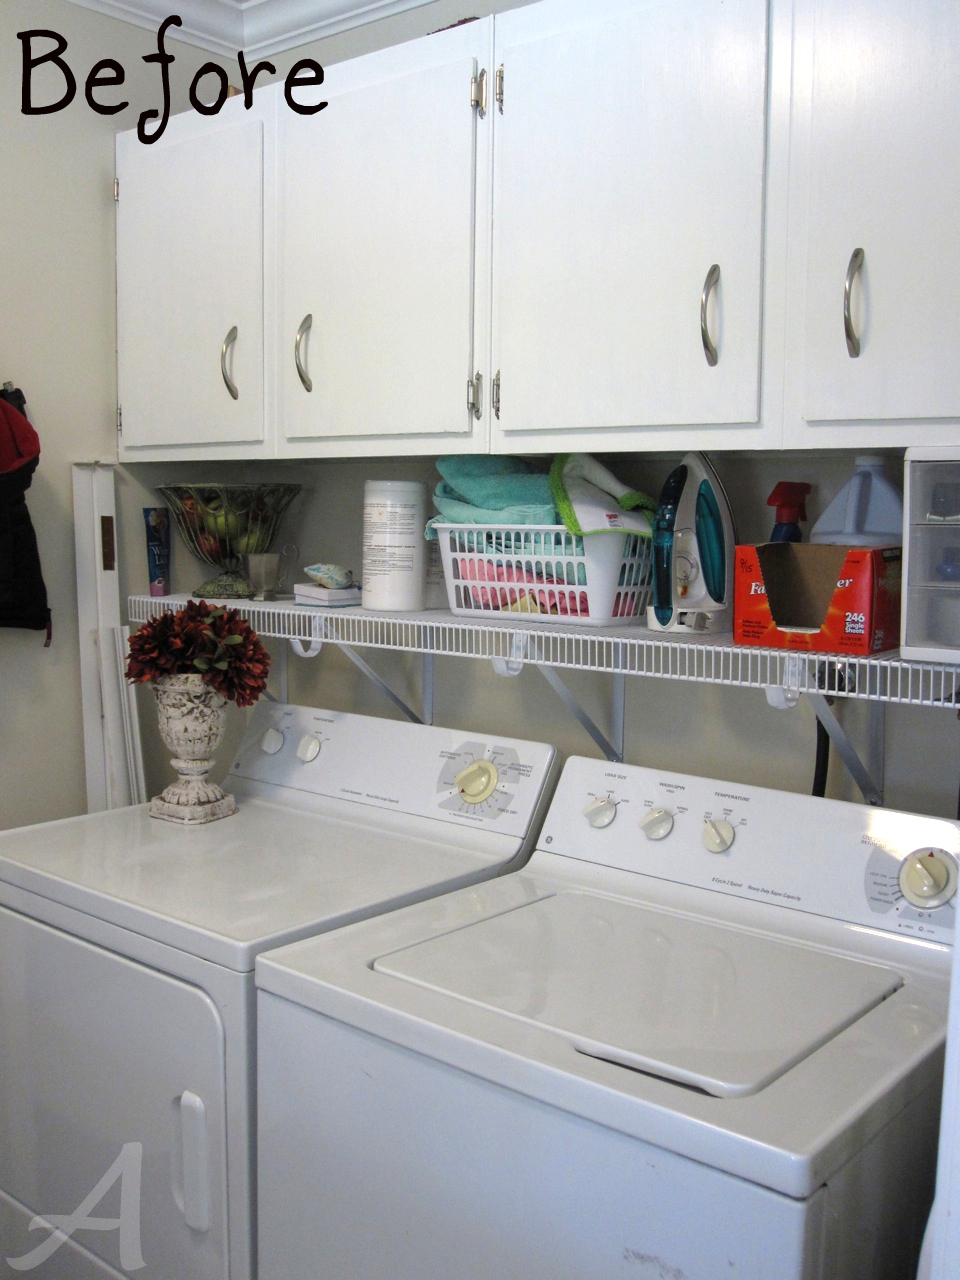 Stunning Laundry Room Organization Ideas For A Limited Space: Fabulous Modern Style Laundry Room Organization Ideas In White